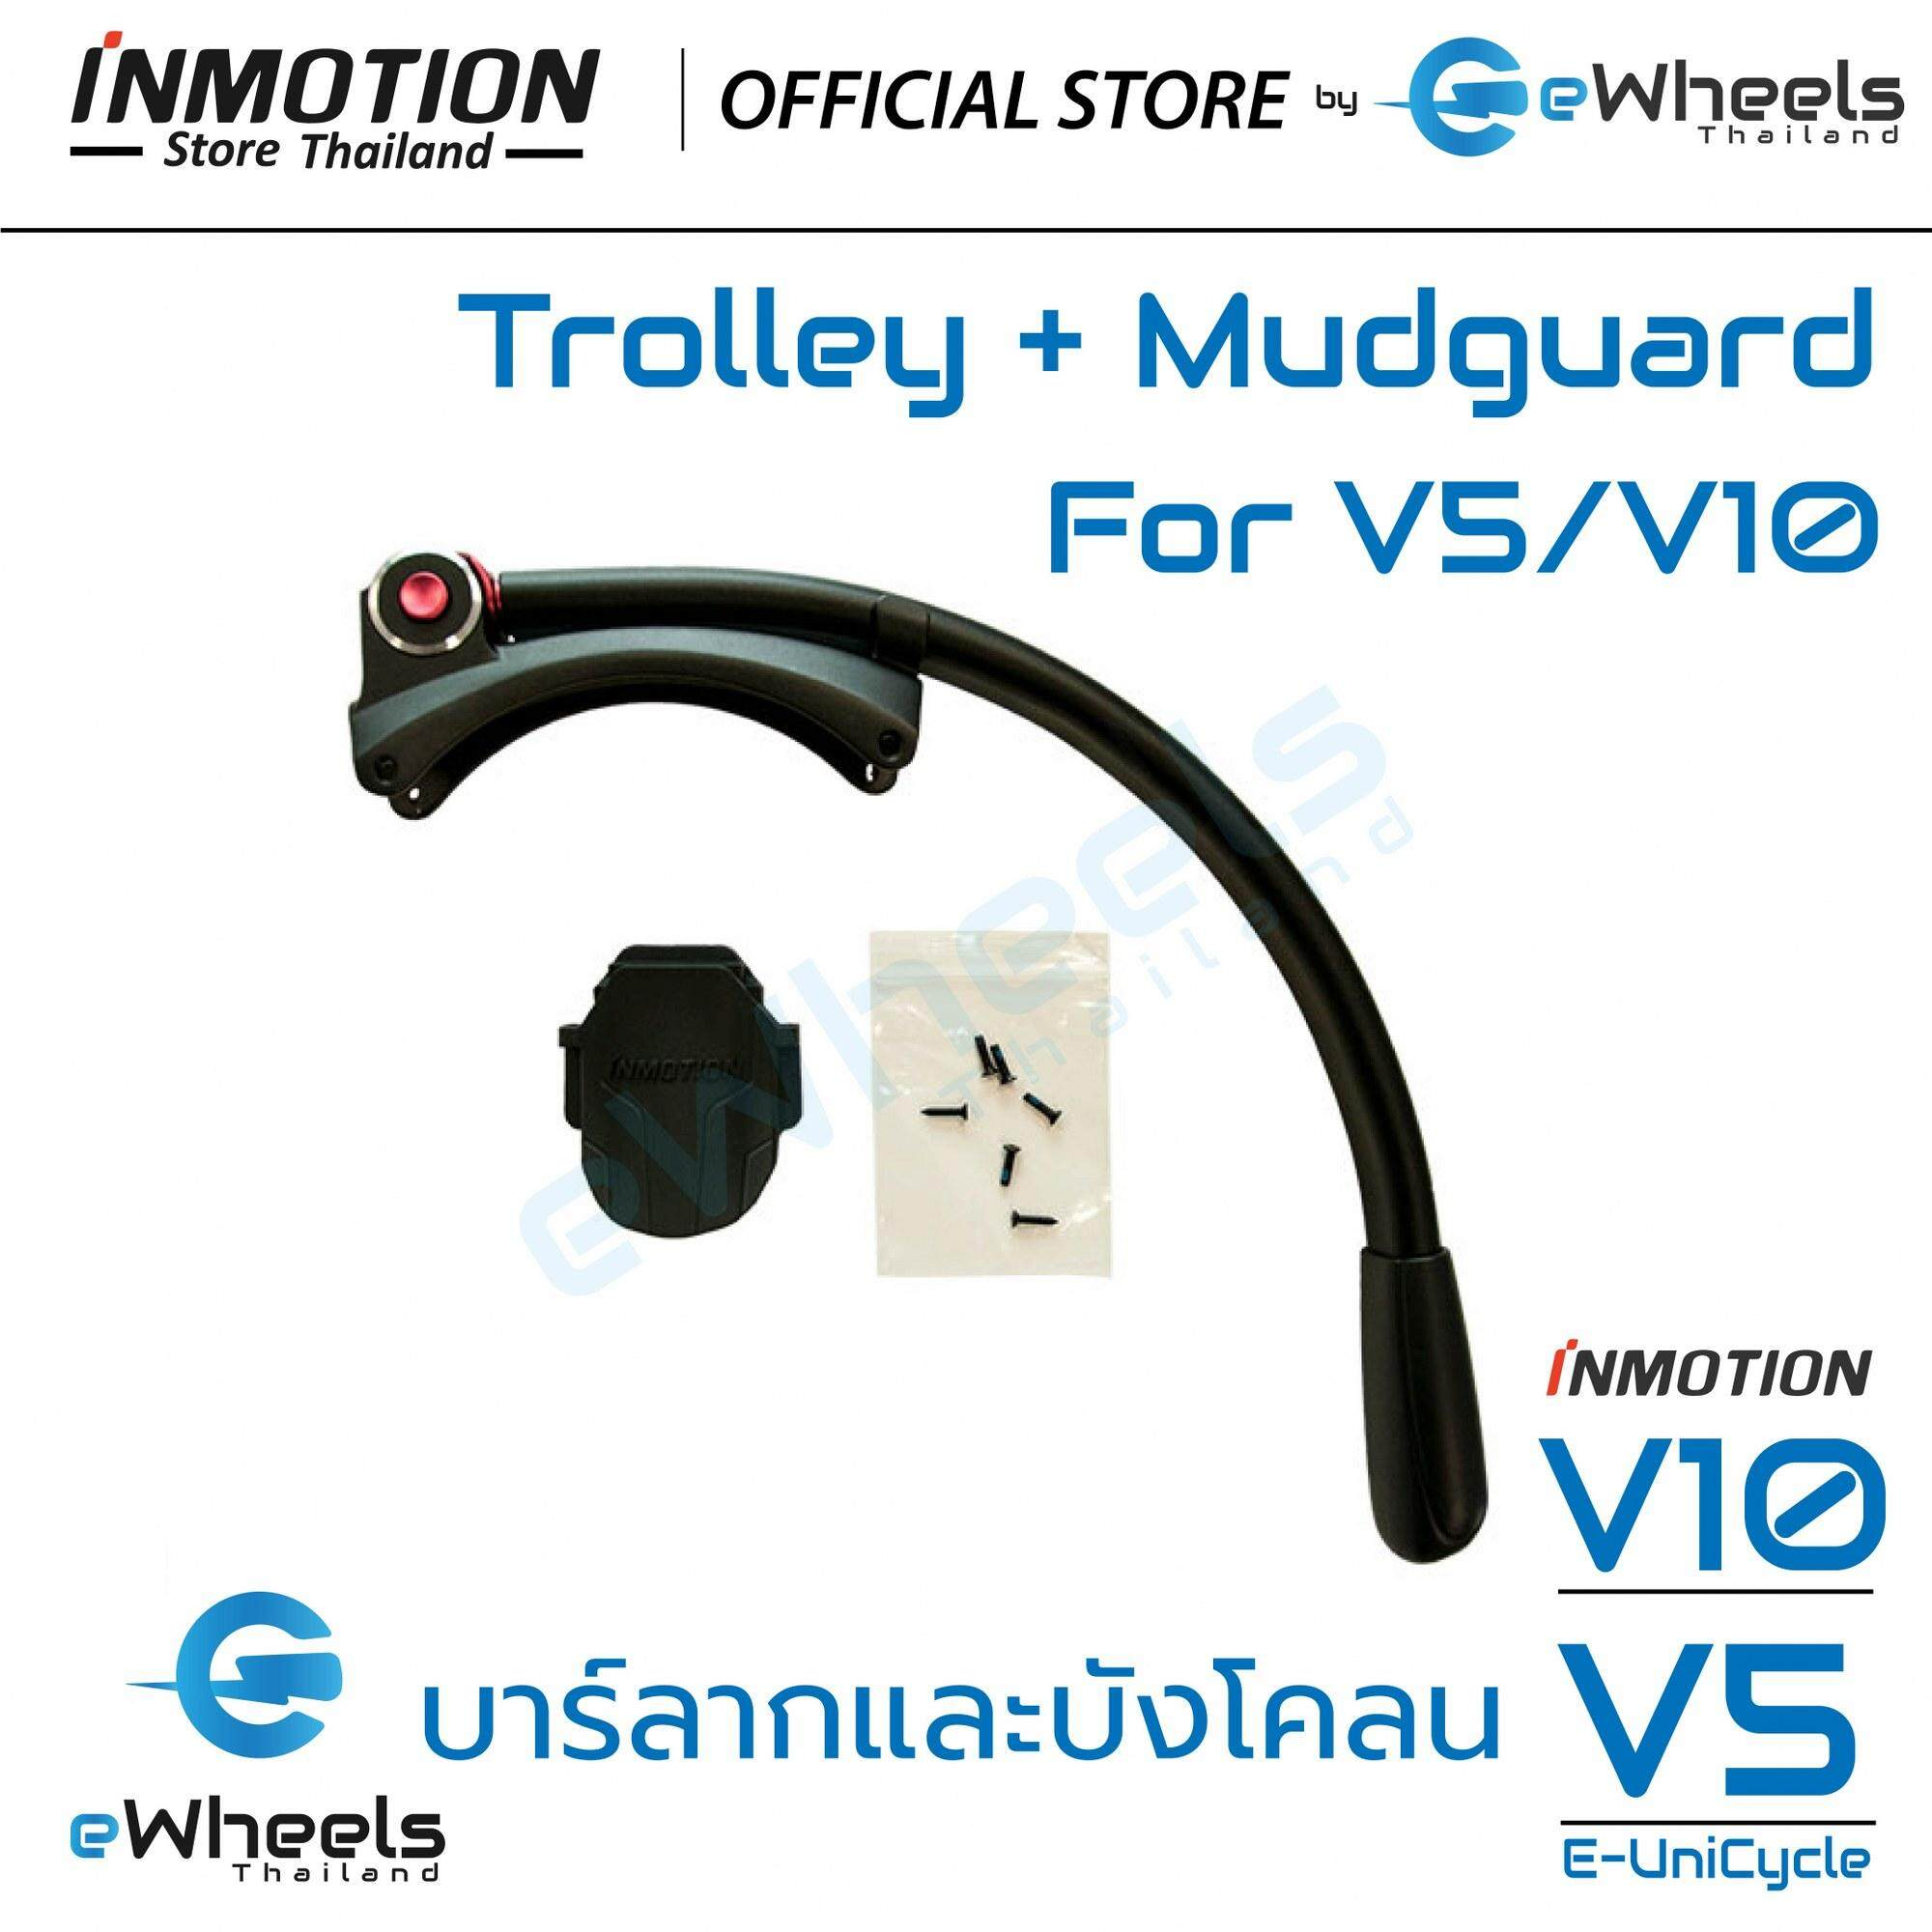 บาร์ลากและบังโคลน สำหรับ V5 /v10 (original Inmotion V5/v10 Trolley And Mudguard) By Inmotion Thailand (by Ewheels Thailand).